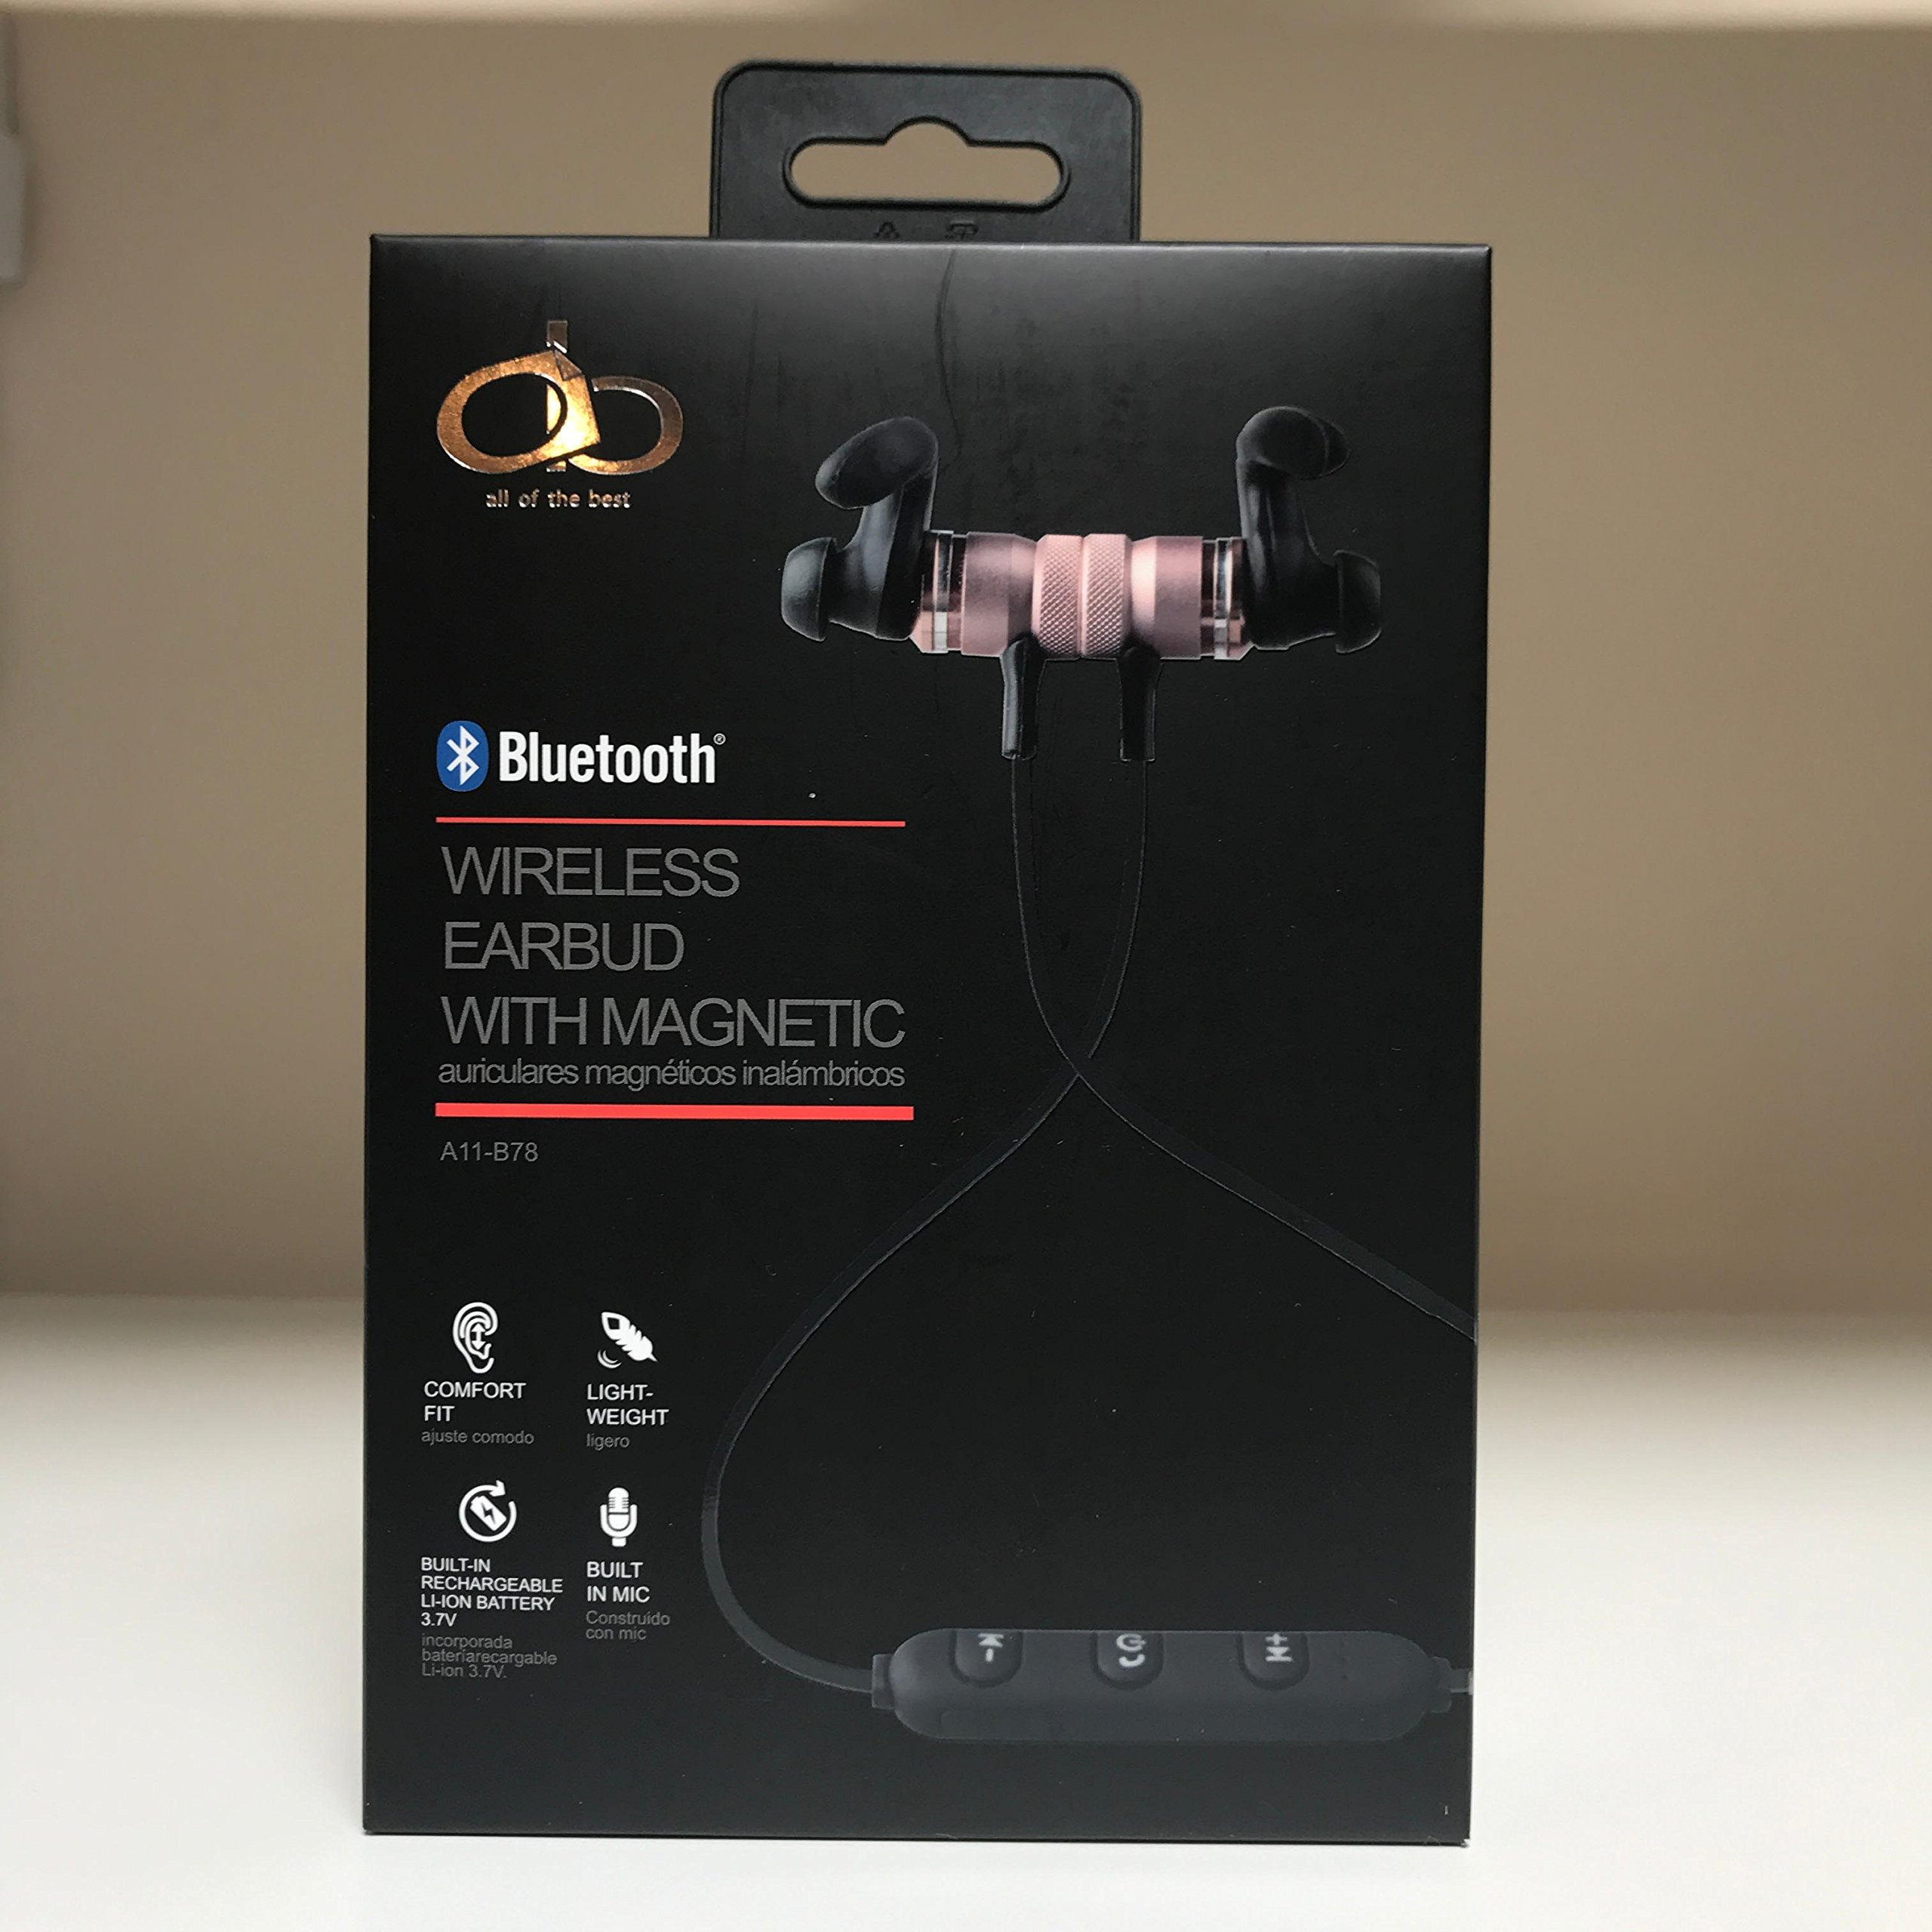 all of the best - Wireless Earbud with Magnetic - Bluetooth